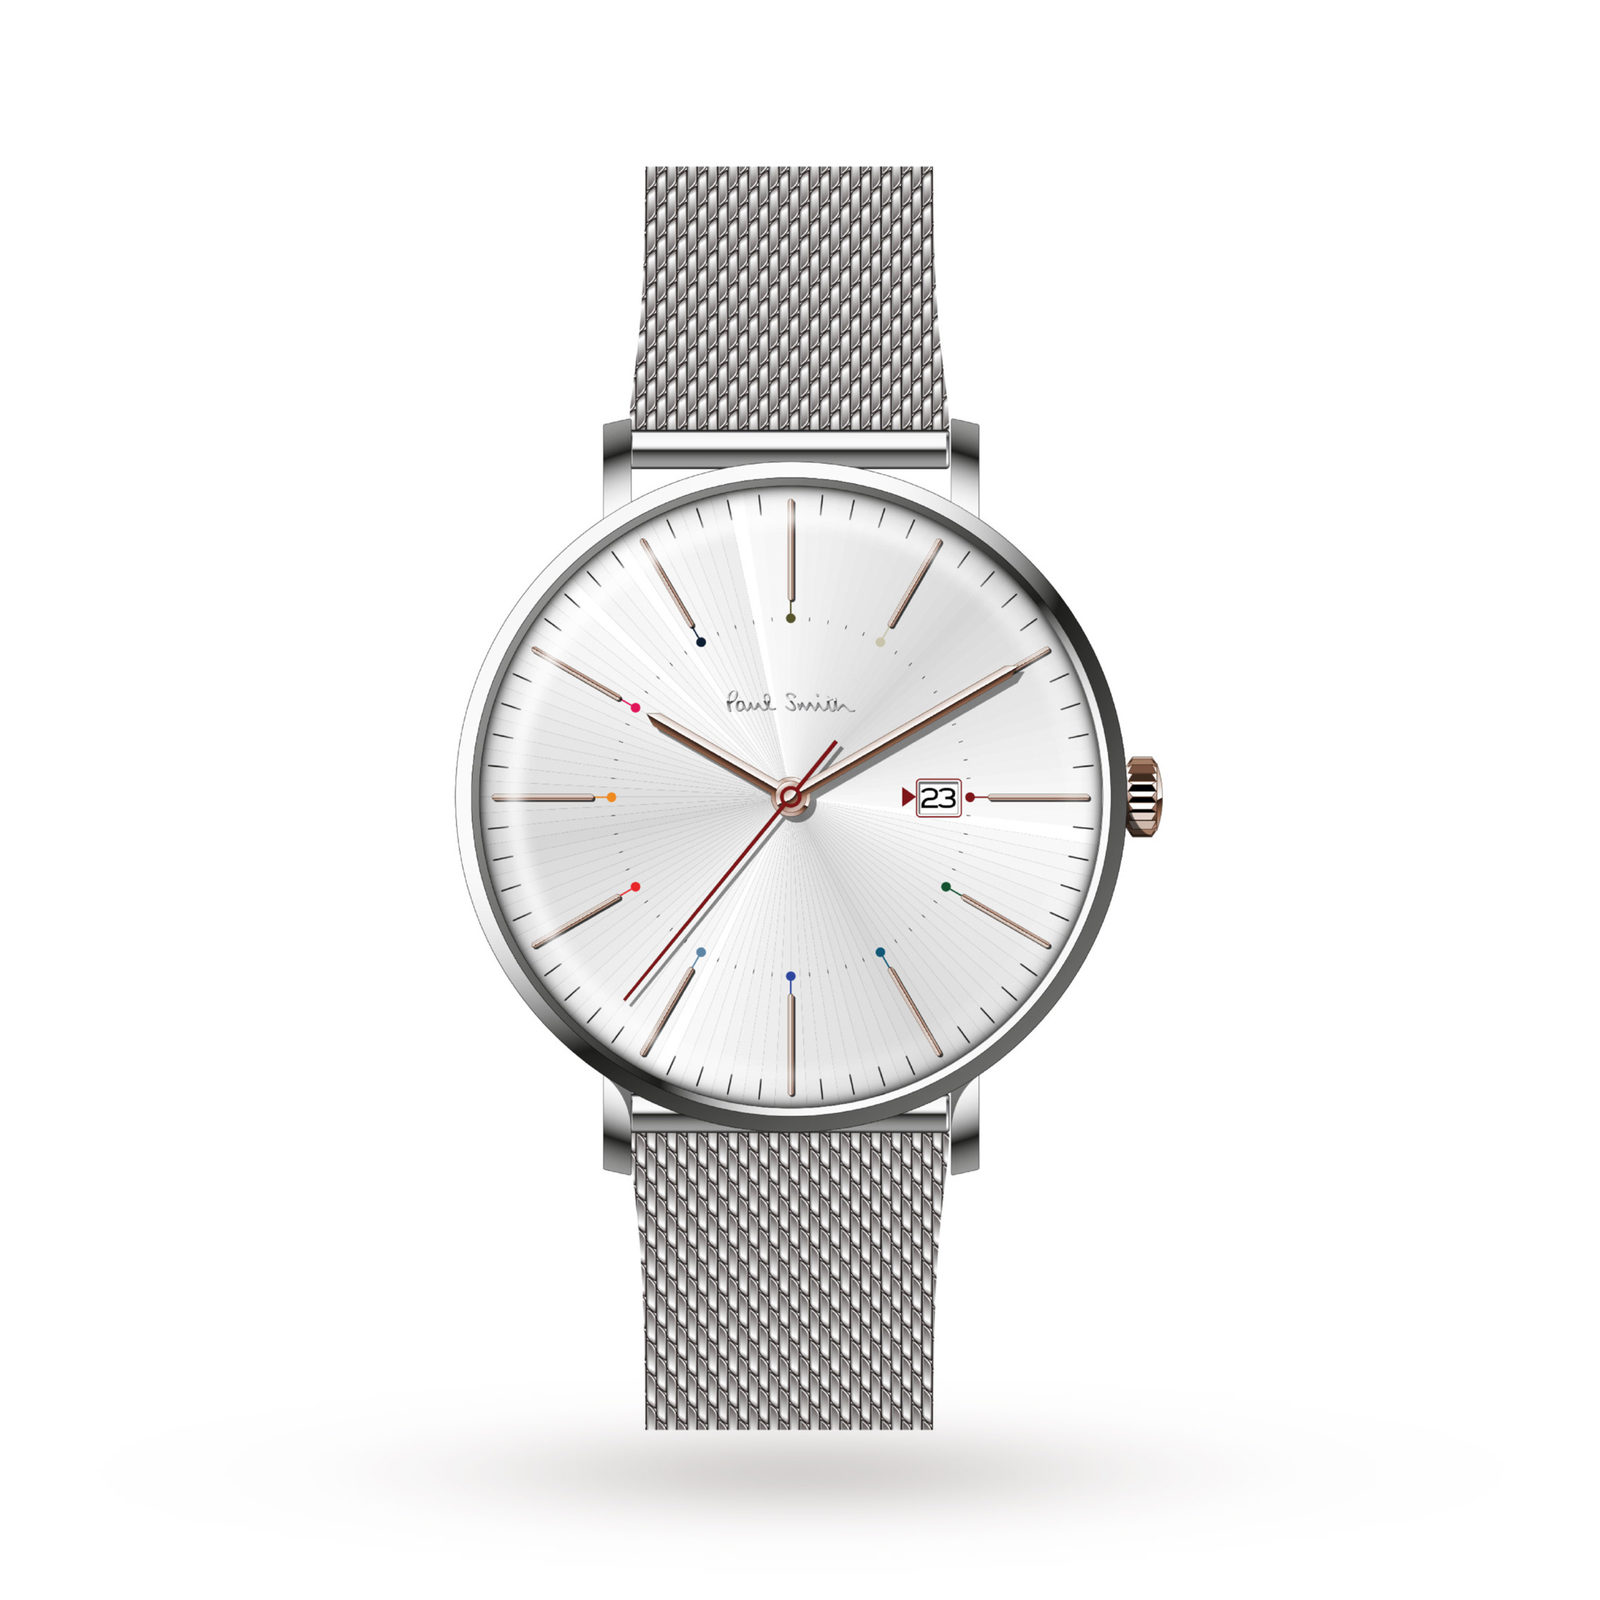 Paul Smith Track Men's Watch P10086